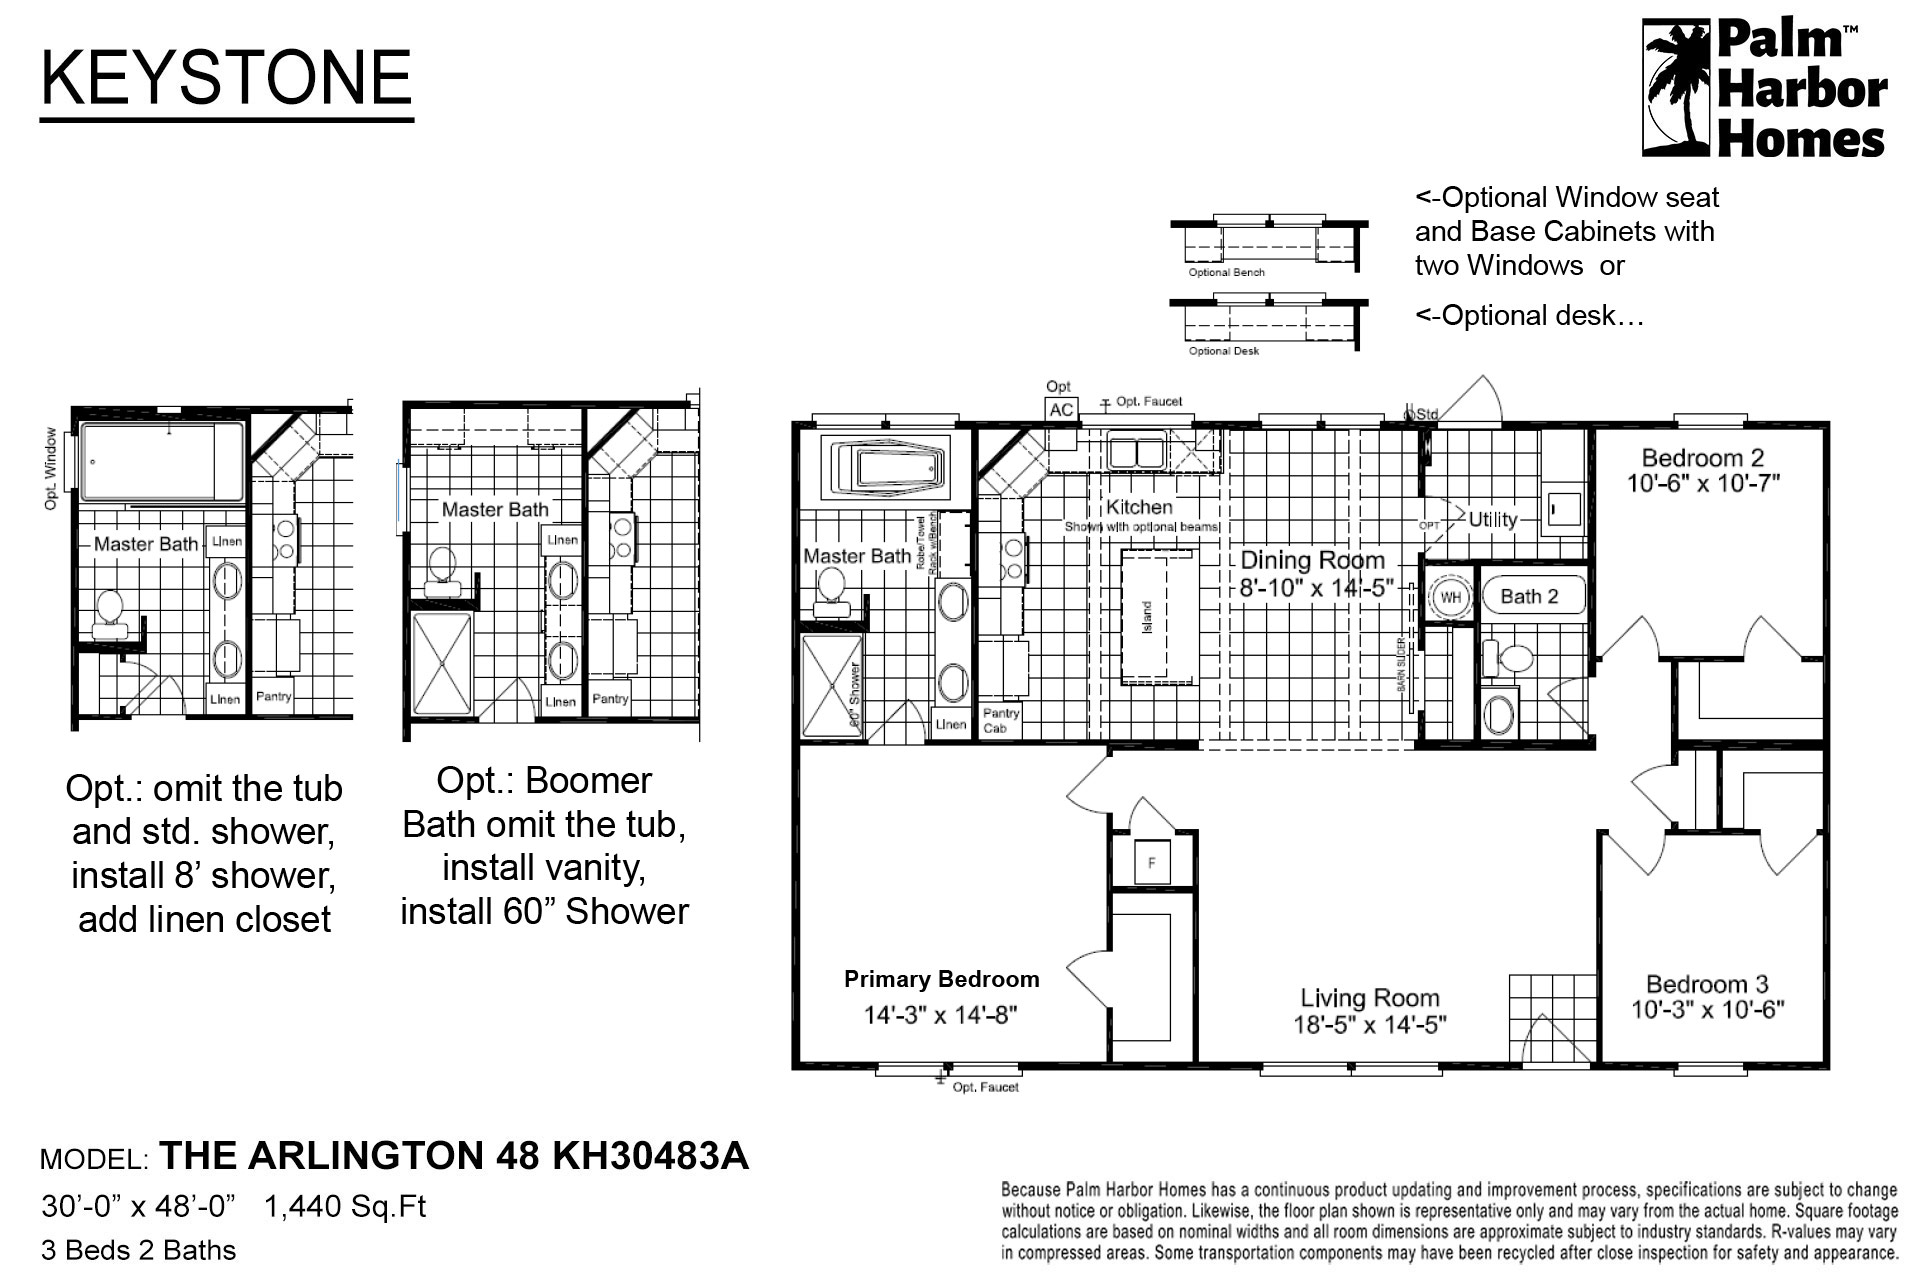 Keystone - The Arlington 48 KH30483A